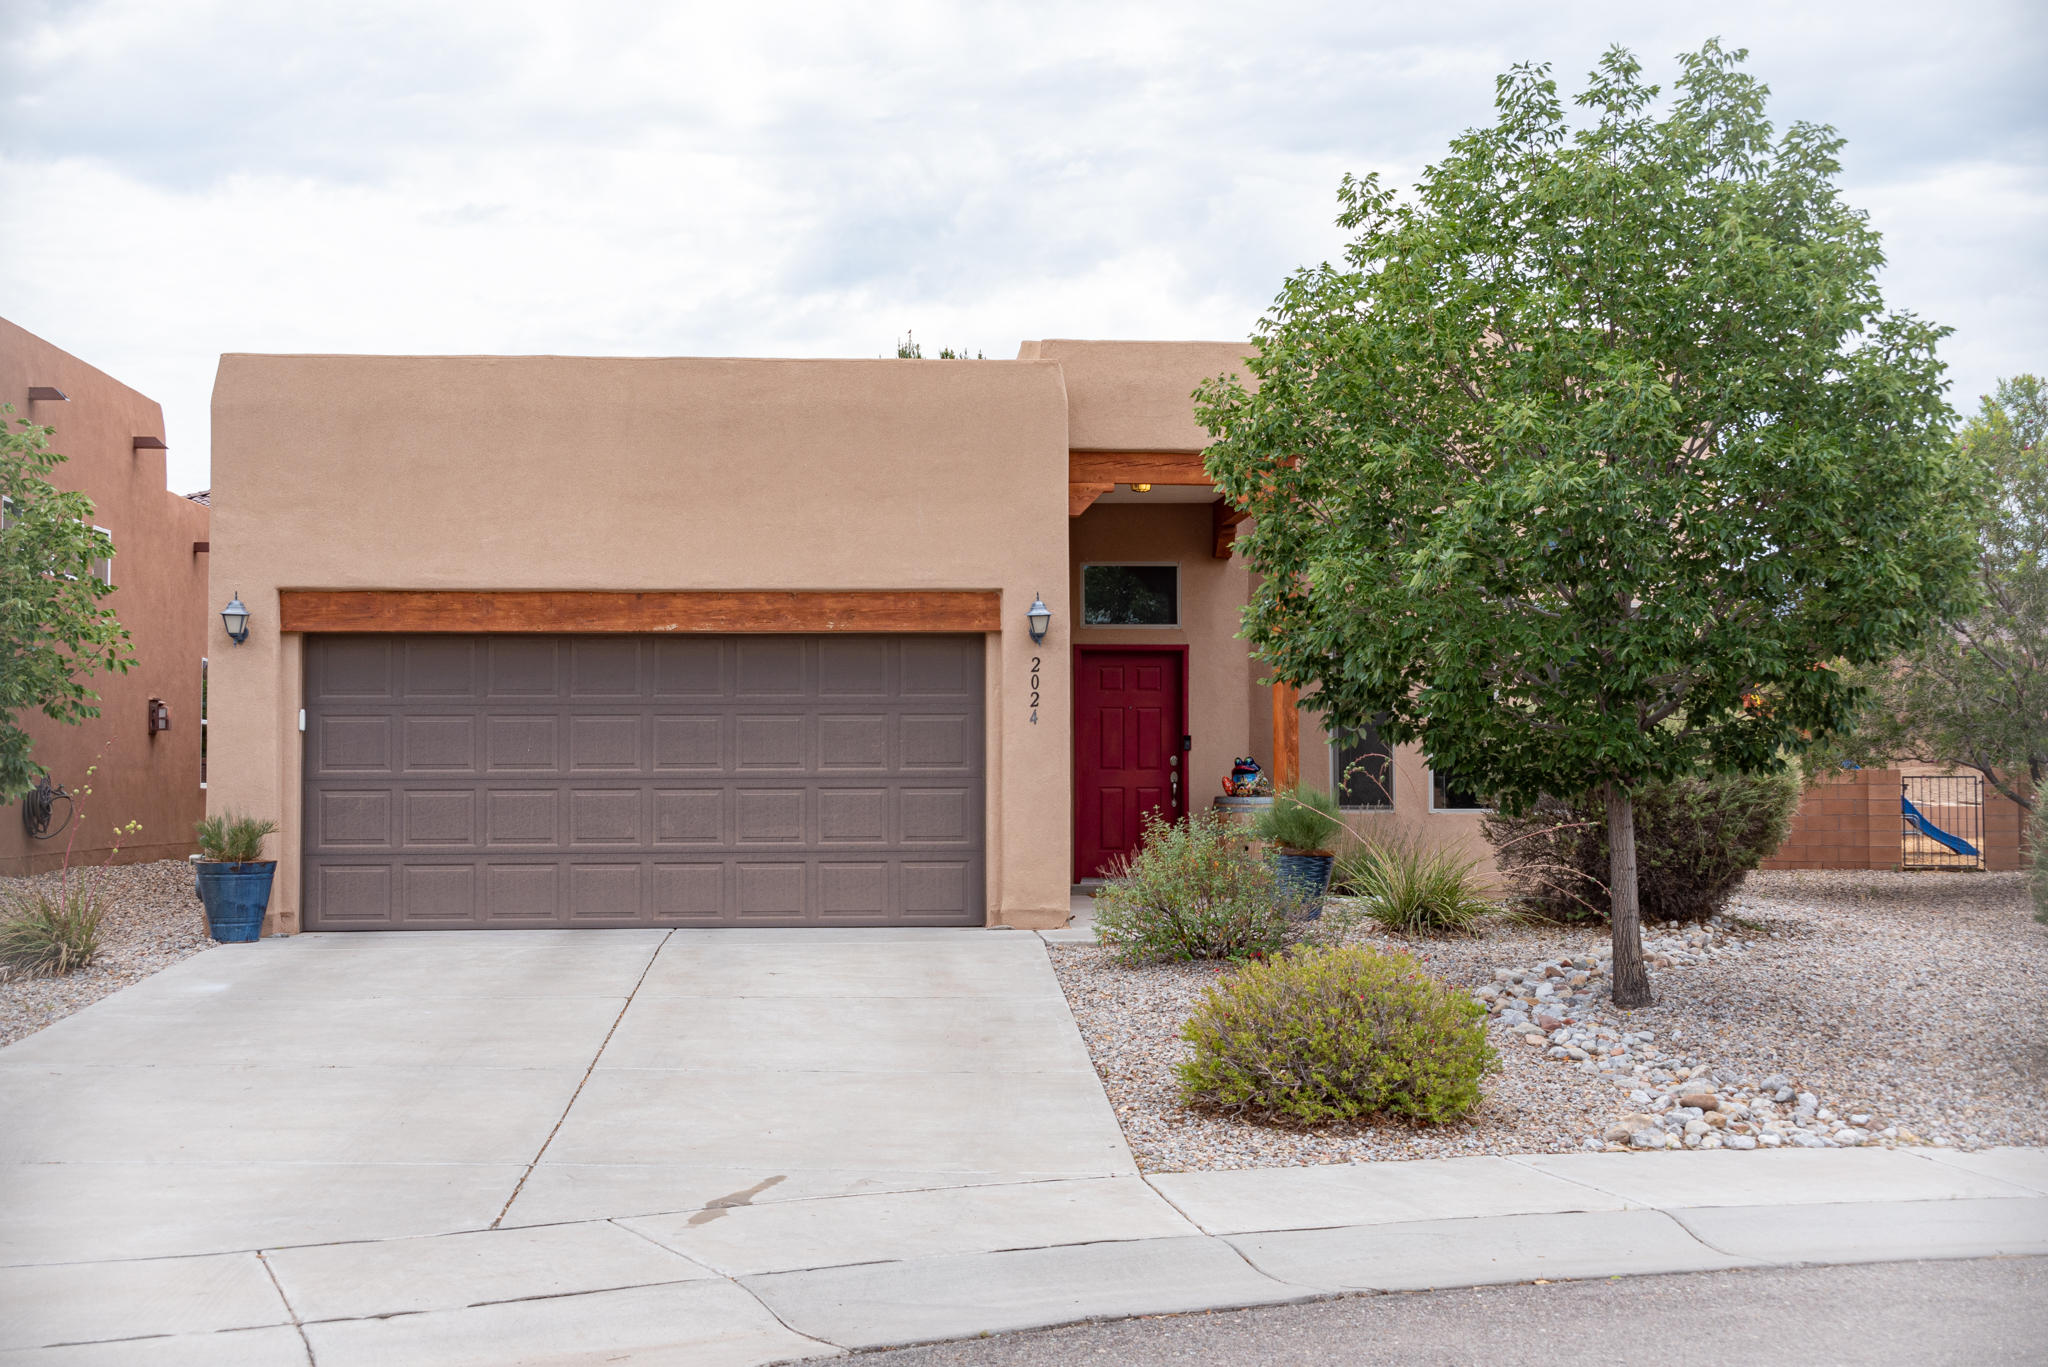 Don't miss your opportunity to own this beautiful one story home in Voltera.  Home features ample natural light with soaring ceiling and kiva fireplace in the living room.  Large owners suite with oversized walk in closet. Plenty of counter space in the kitchen with large pantry too!  Make the backyard your own little oasis.